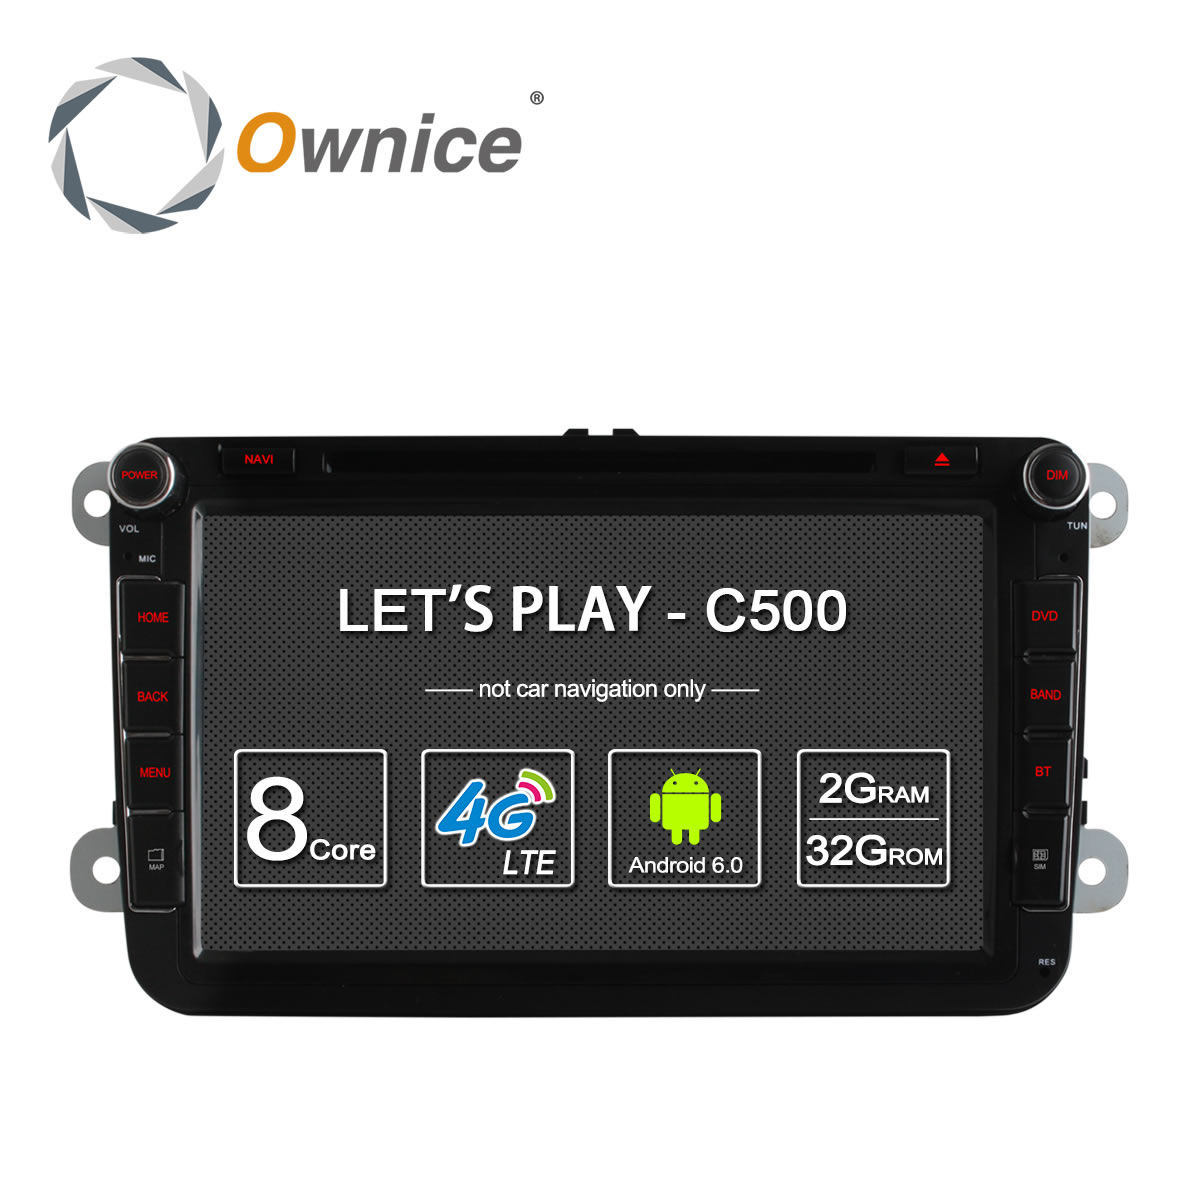 4G SIM LTE Network Ownice K1 K2 Octa 8 Core Android 8.1 2G RAM 2 Din Car DVD GPS Navi Radio Player for VW Skoda Octavia 2